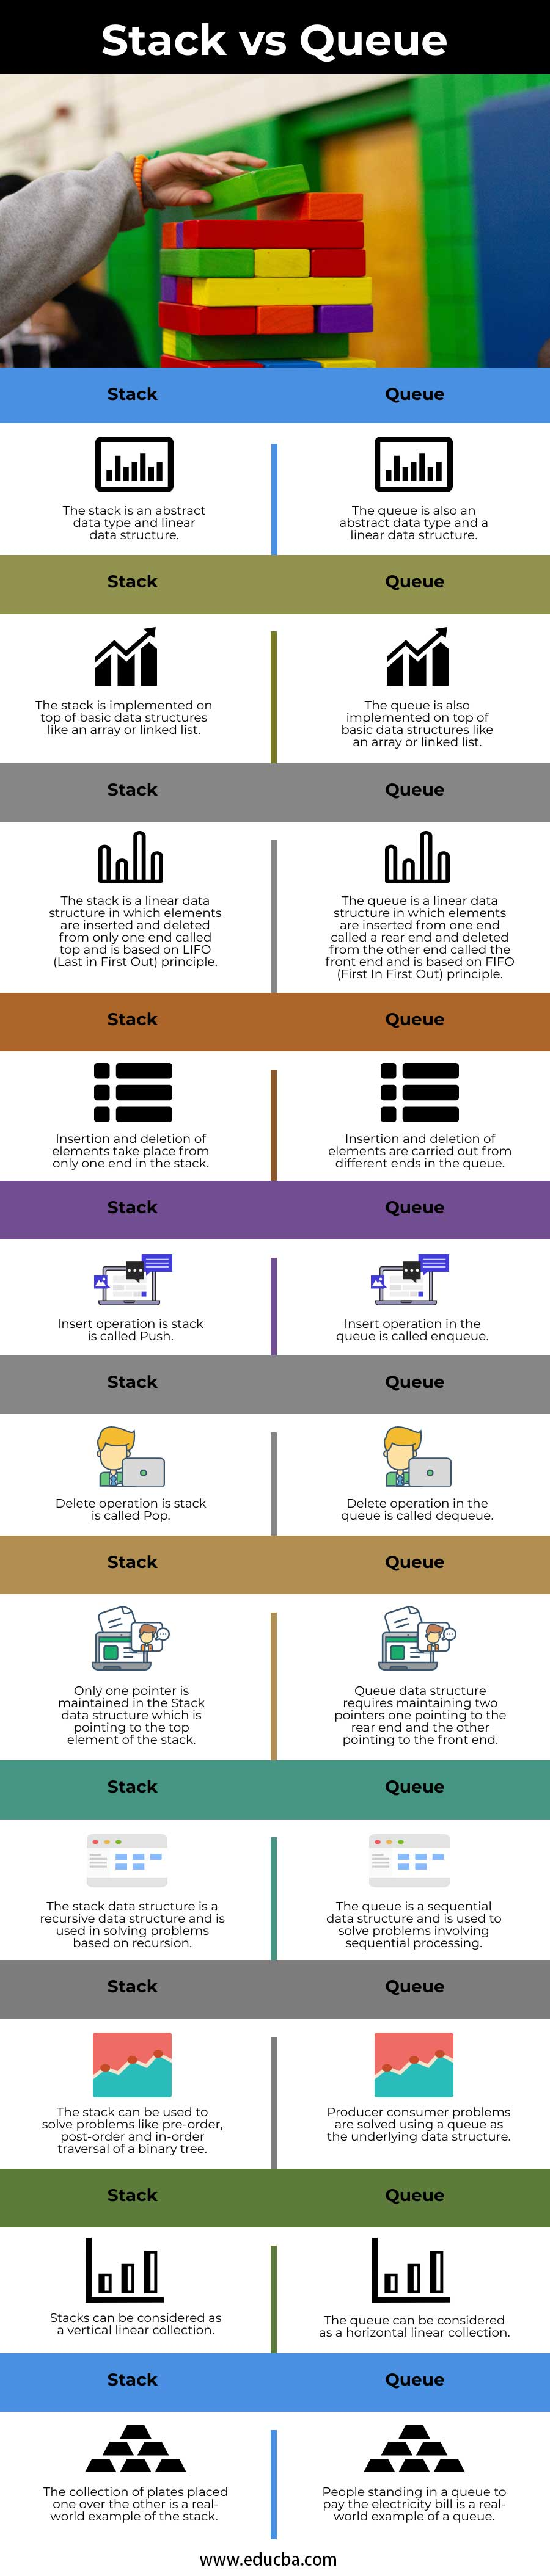 Stack-vs-Queue-info